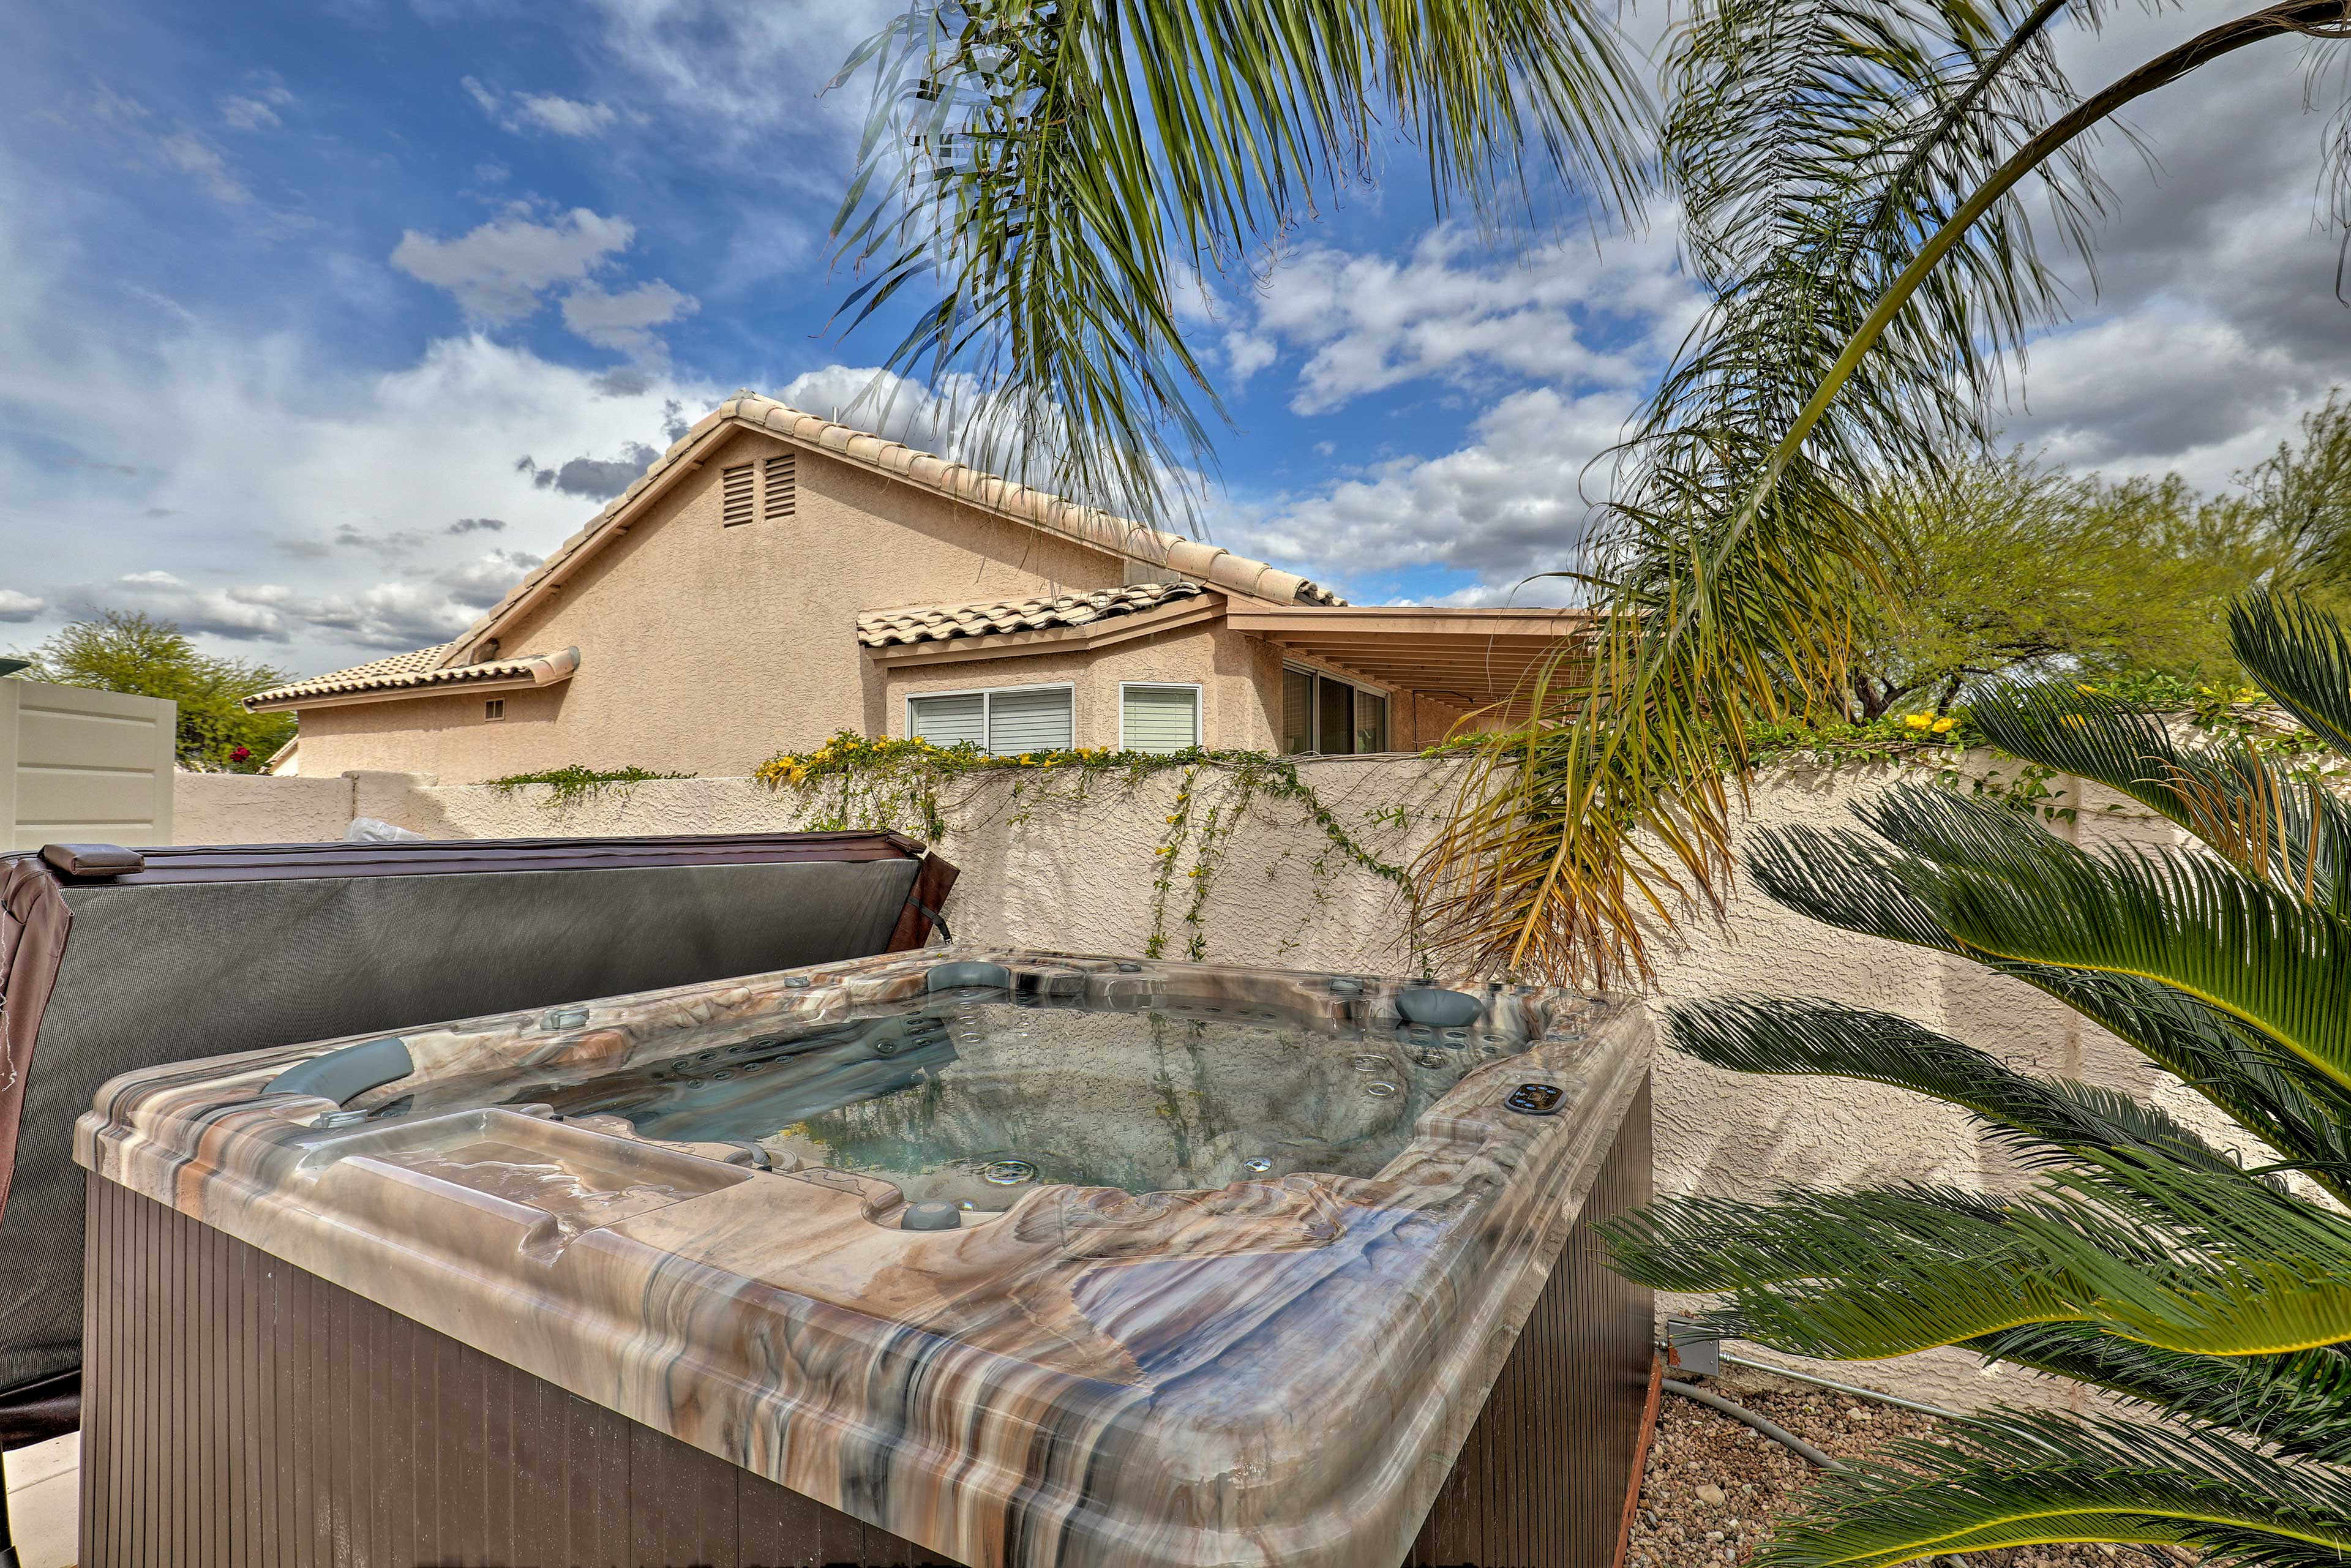 Soothe your muscles in the private hot tub after exploring Saguaro National Park